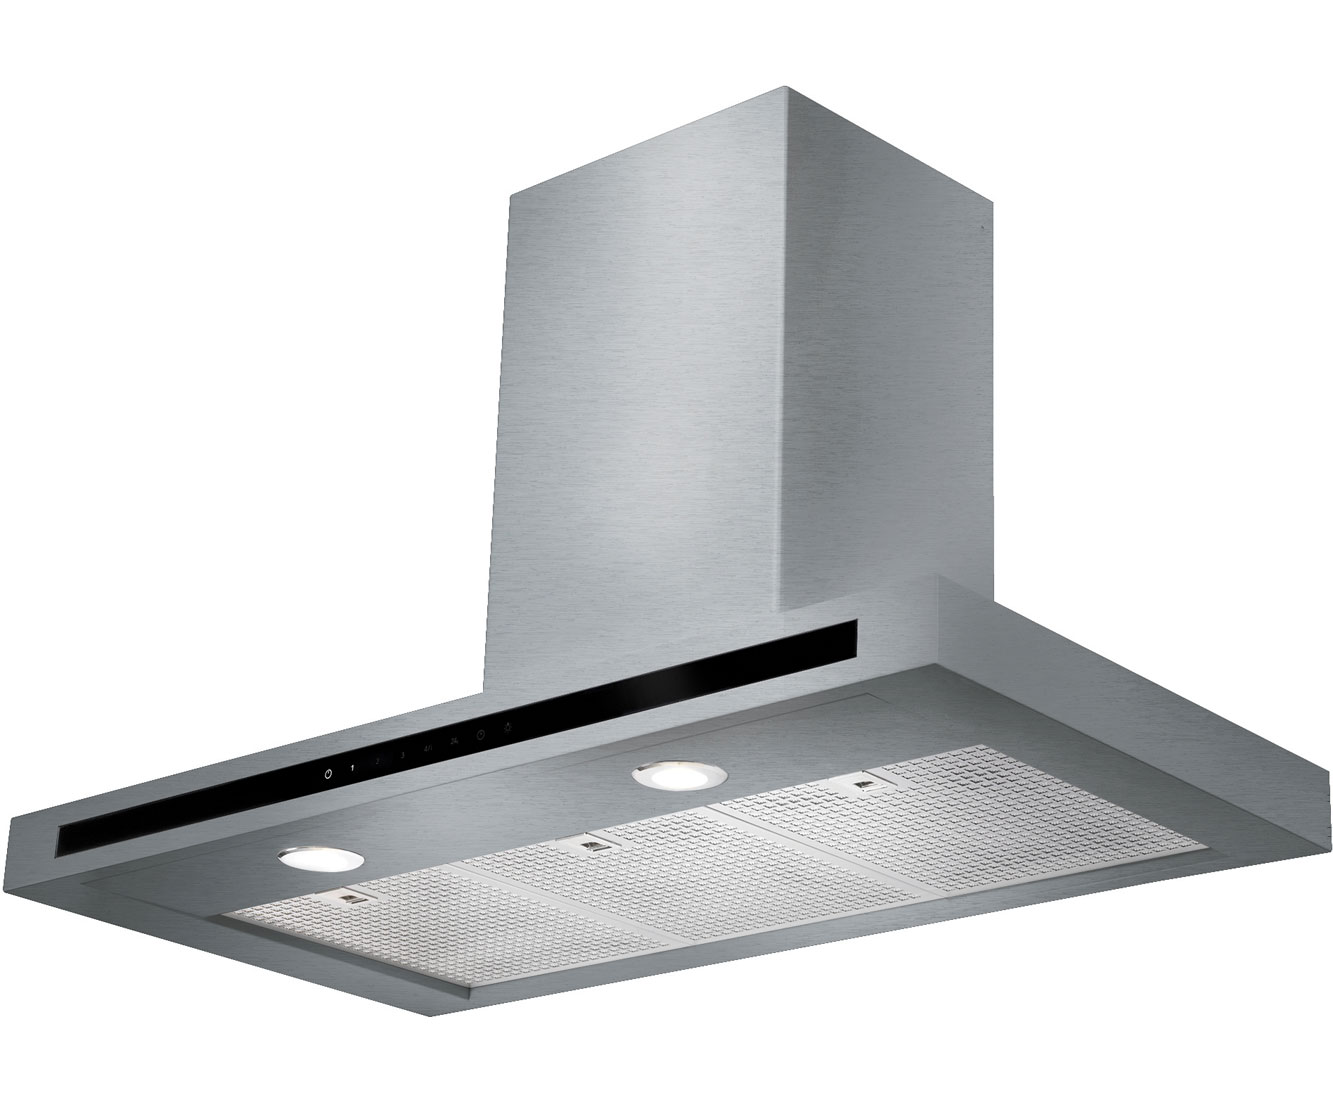 Rangemaster HiLite Flat HLTHDS110SS Integrated Cooker Hood in Stainless Steel